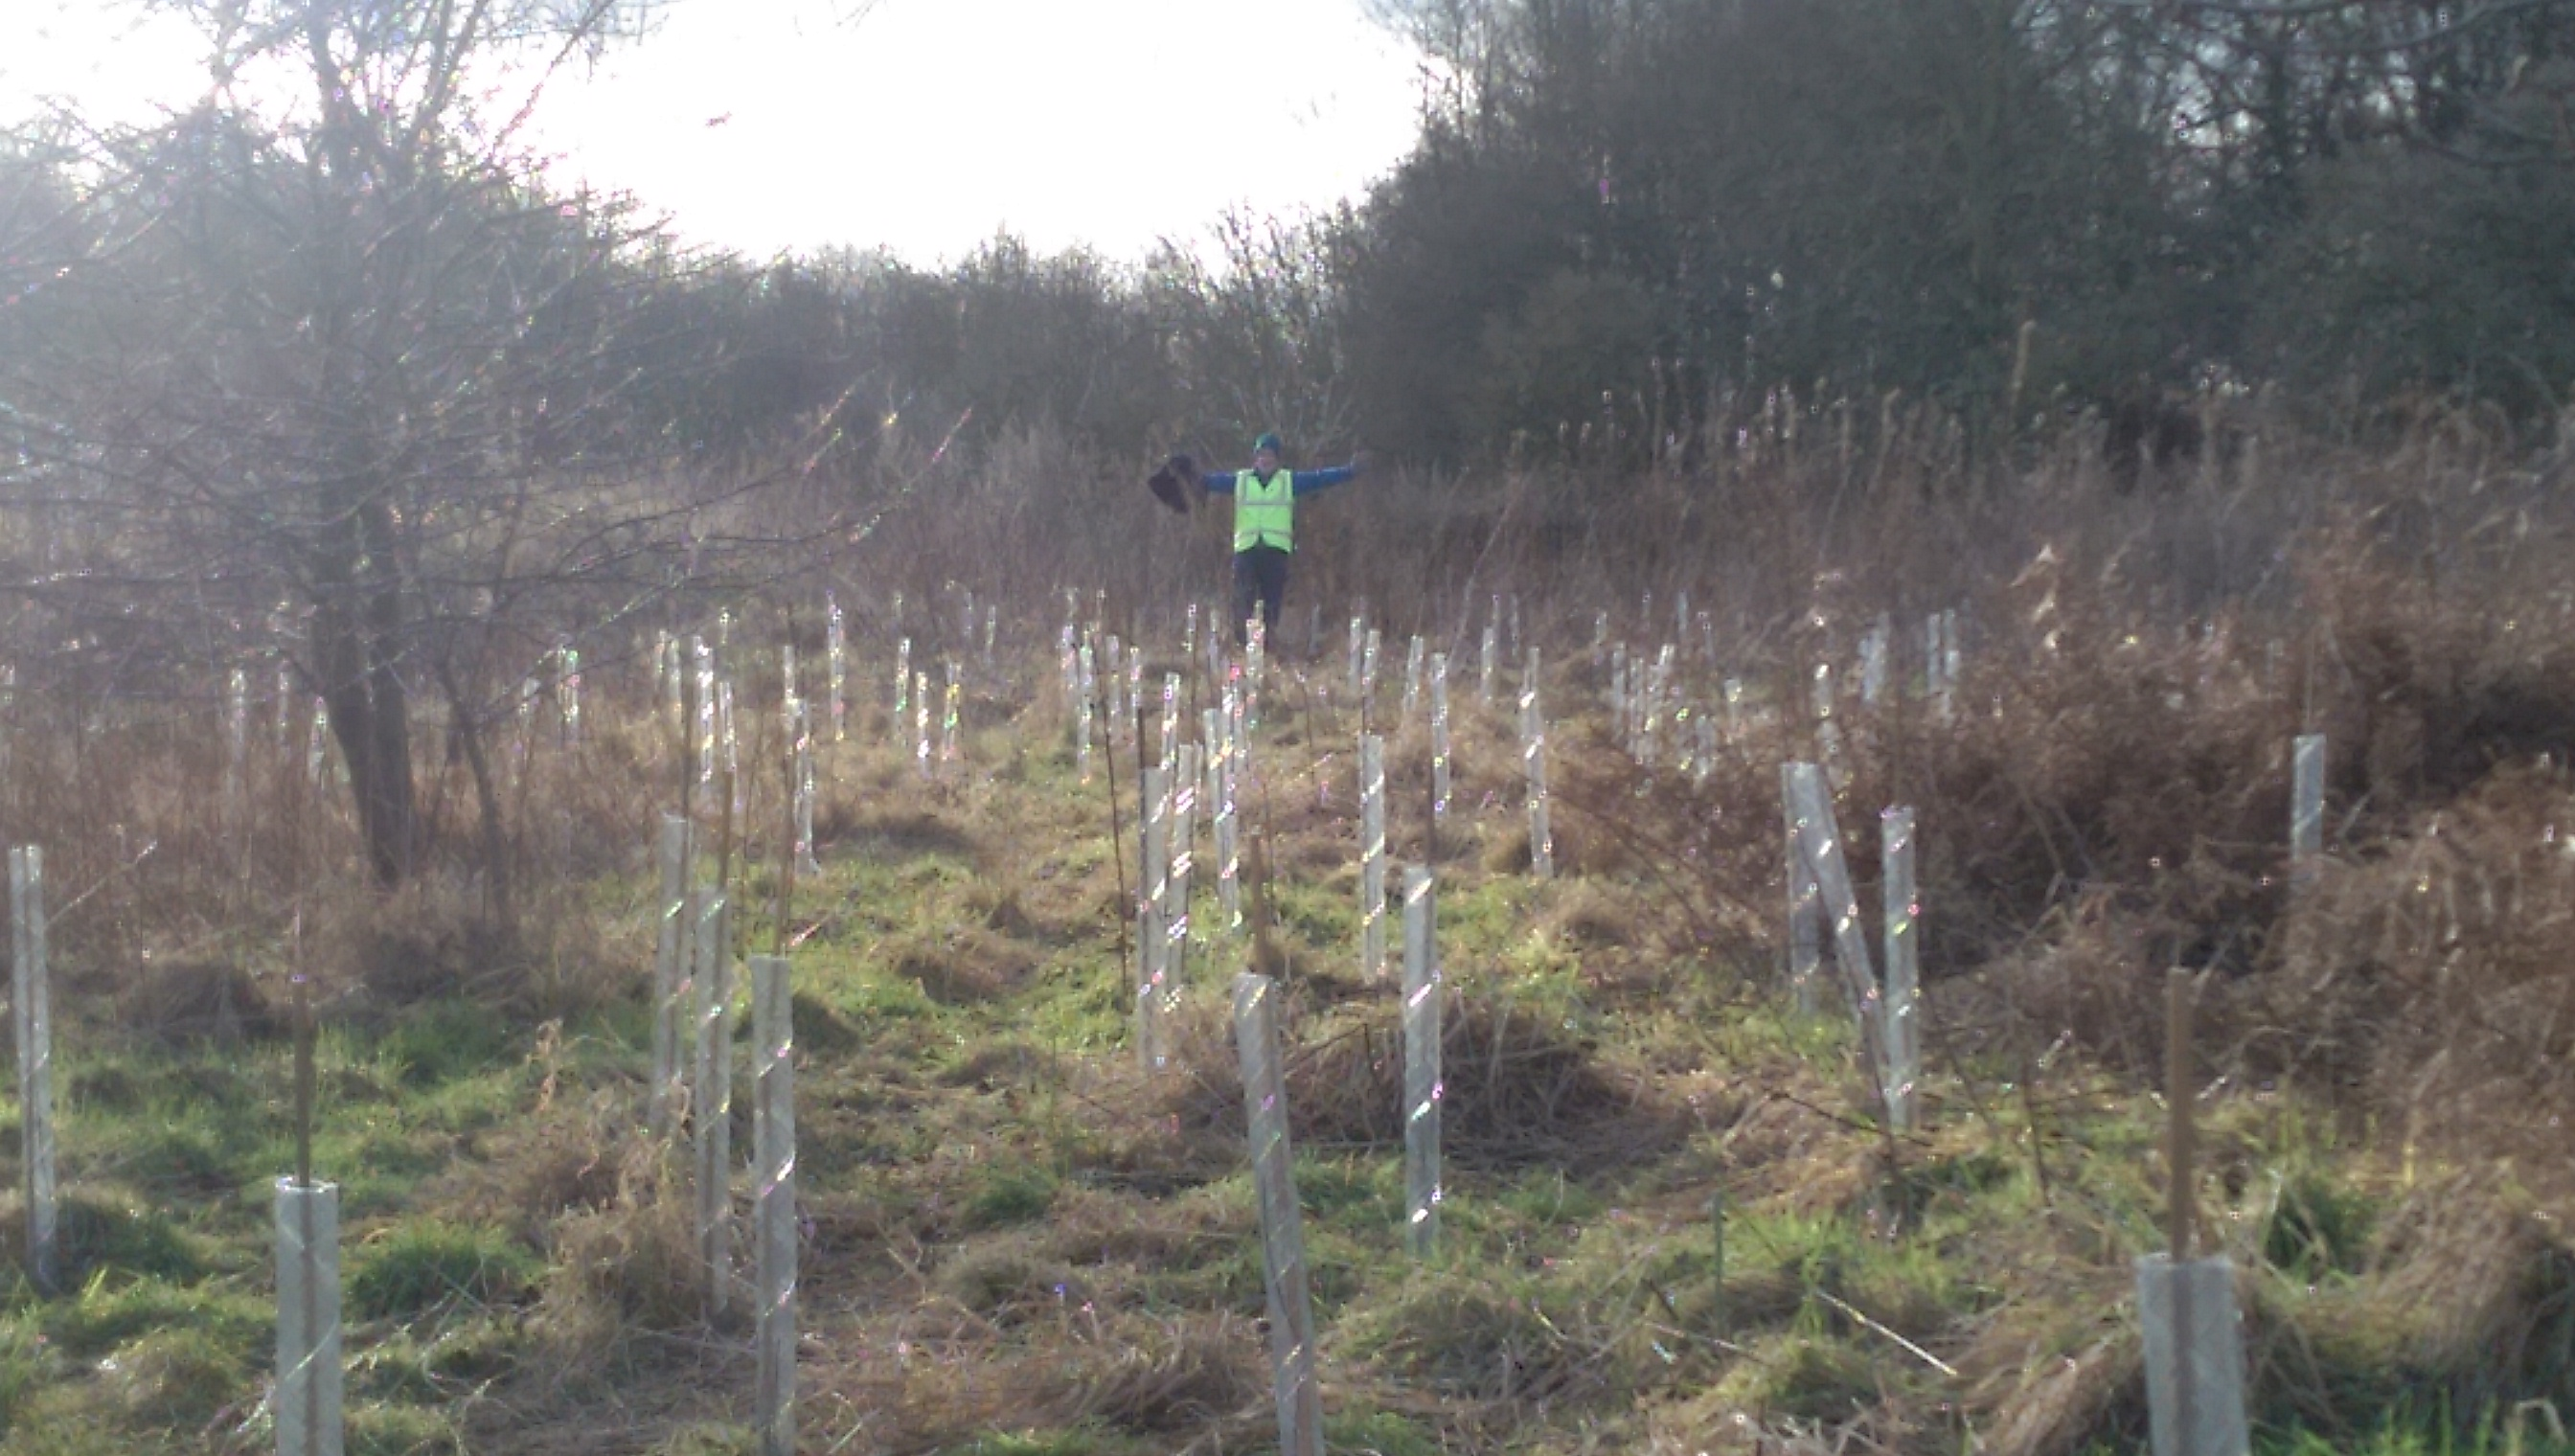 We planted 420 trees in Pontefract Park